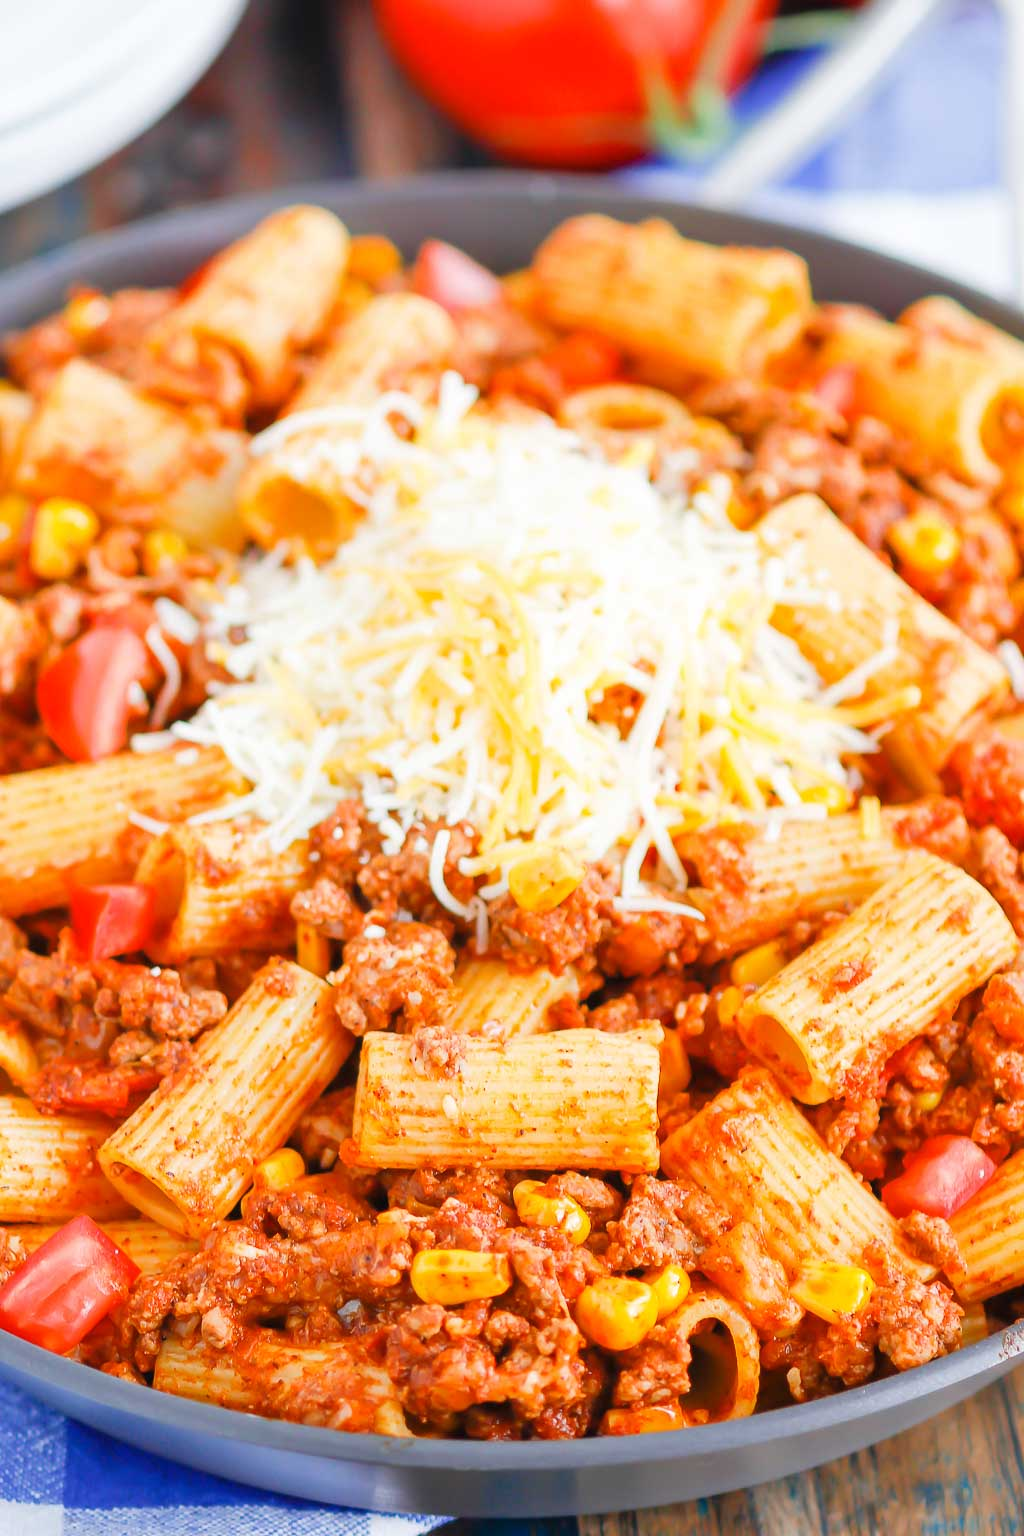 chili pasta garnished with cheese in a large skillet